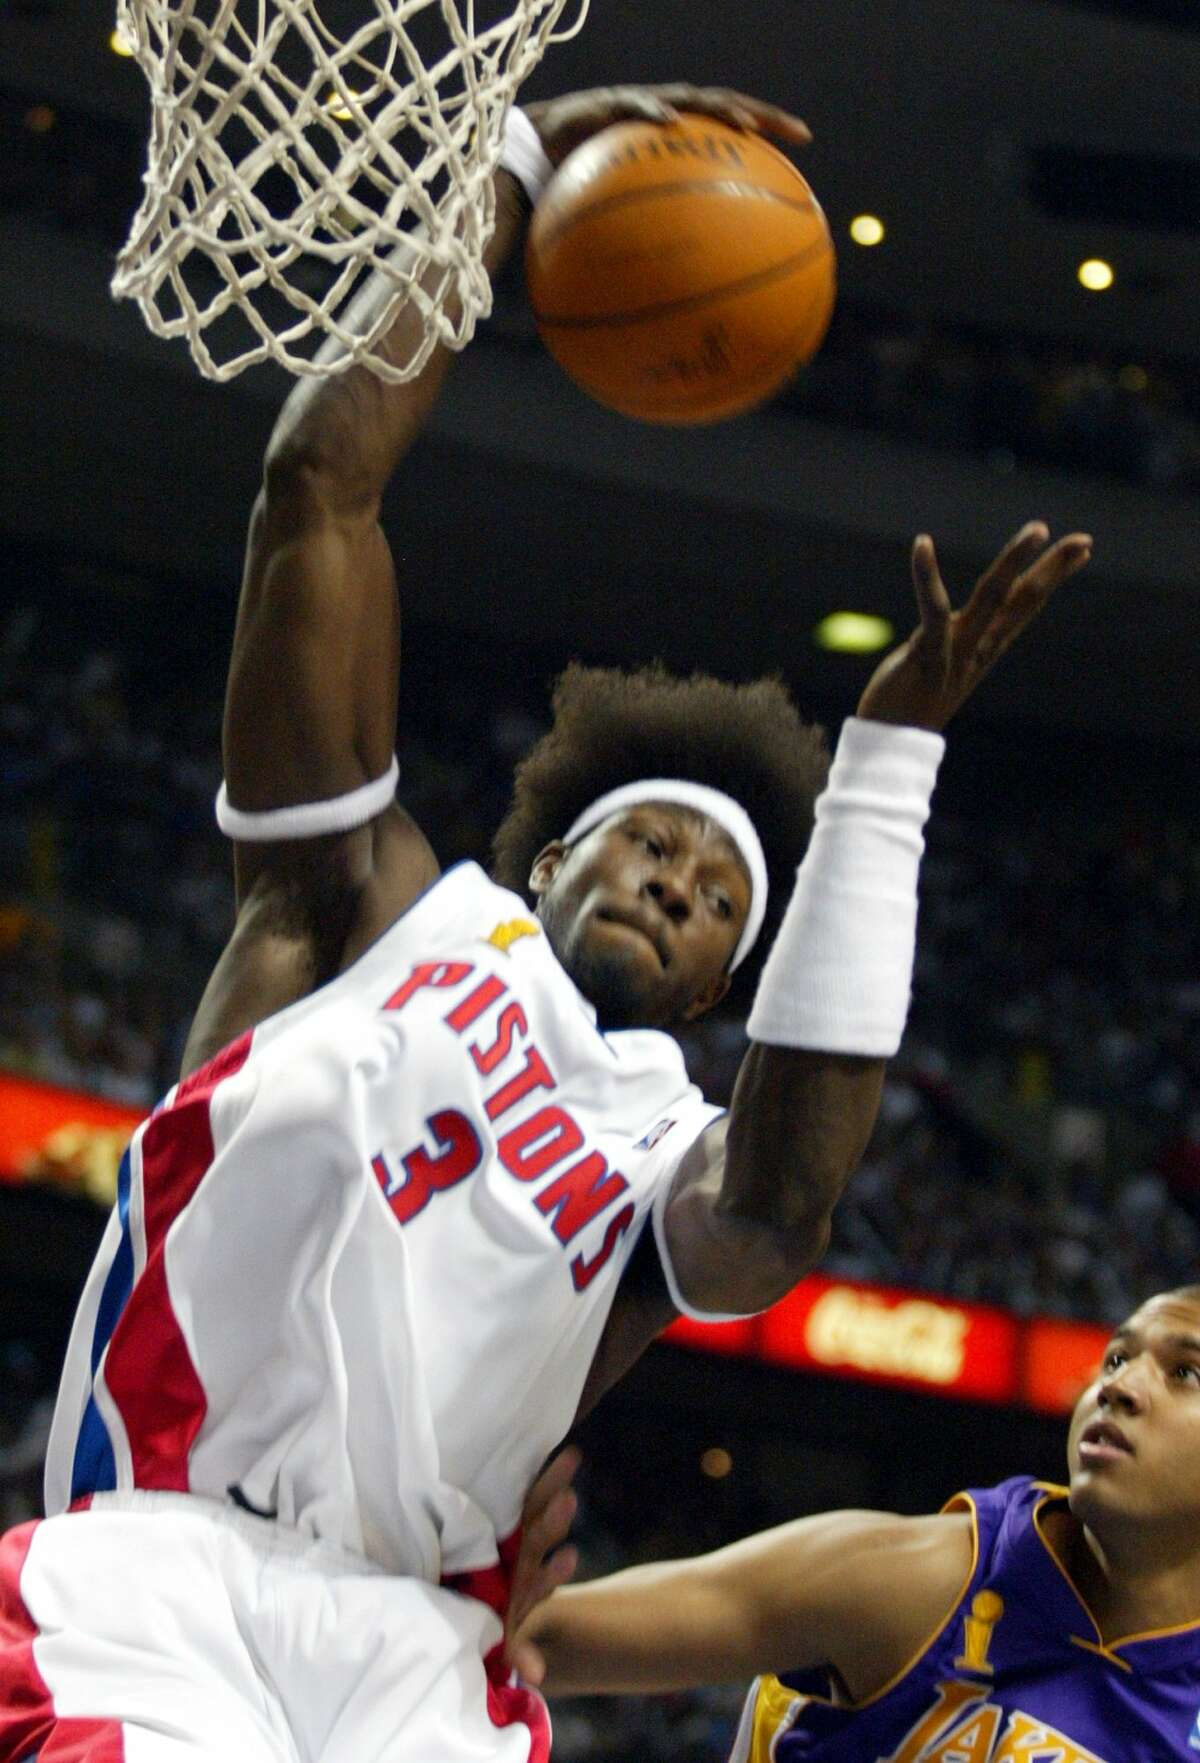 -- NO MAGS, NO SALES -- KRT SPORTS STORY SLUGGED: LAKERS-PISTONS KRT PHOTO BY MICHAEL GOULDING/ORANGE COUNTY REGISTER (L.A. TIMES OUT) (June 15) AUBURN HILLS, MI -- Detroit's Ben Wallace pulls down a rebound over LA's Brian Cook in the first quarter of Game 5 of the NBA Finals at the Palace of Auburn Hills in Auburn Hills, Michigan, on June 15, 2004. (mvw) 2004